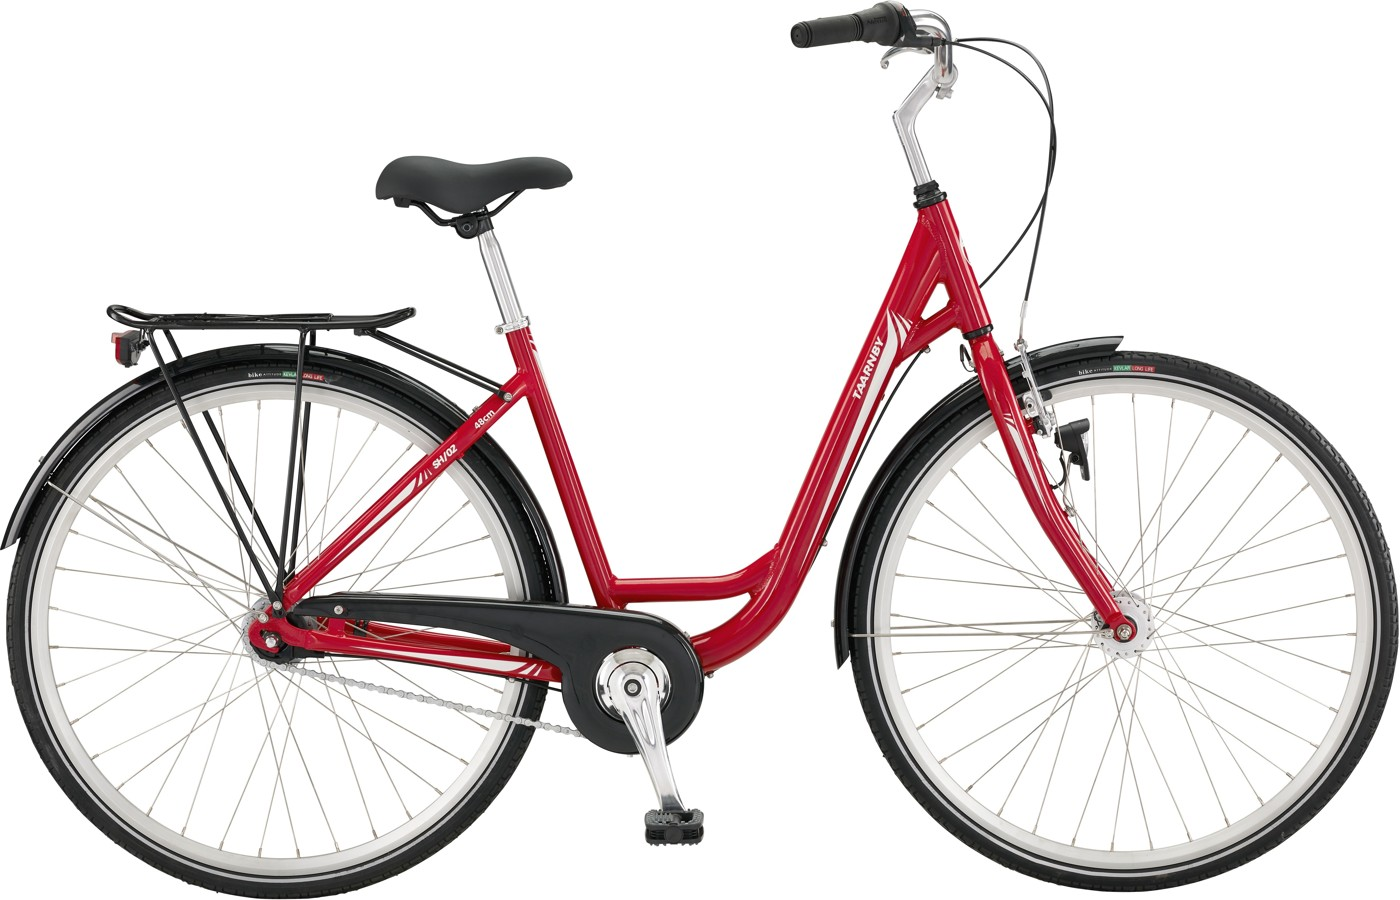 Taarnby Shopping 02 Lady 48 cm Nexus 7g Coaster Dynamohub Red/Creme white  Citybike